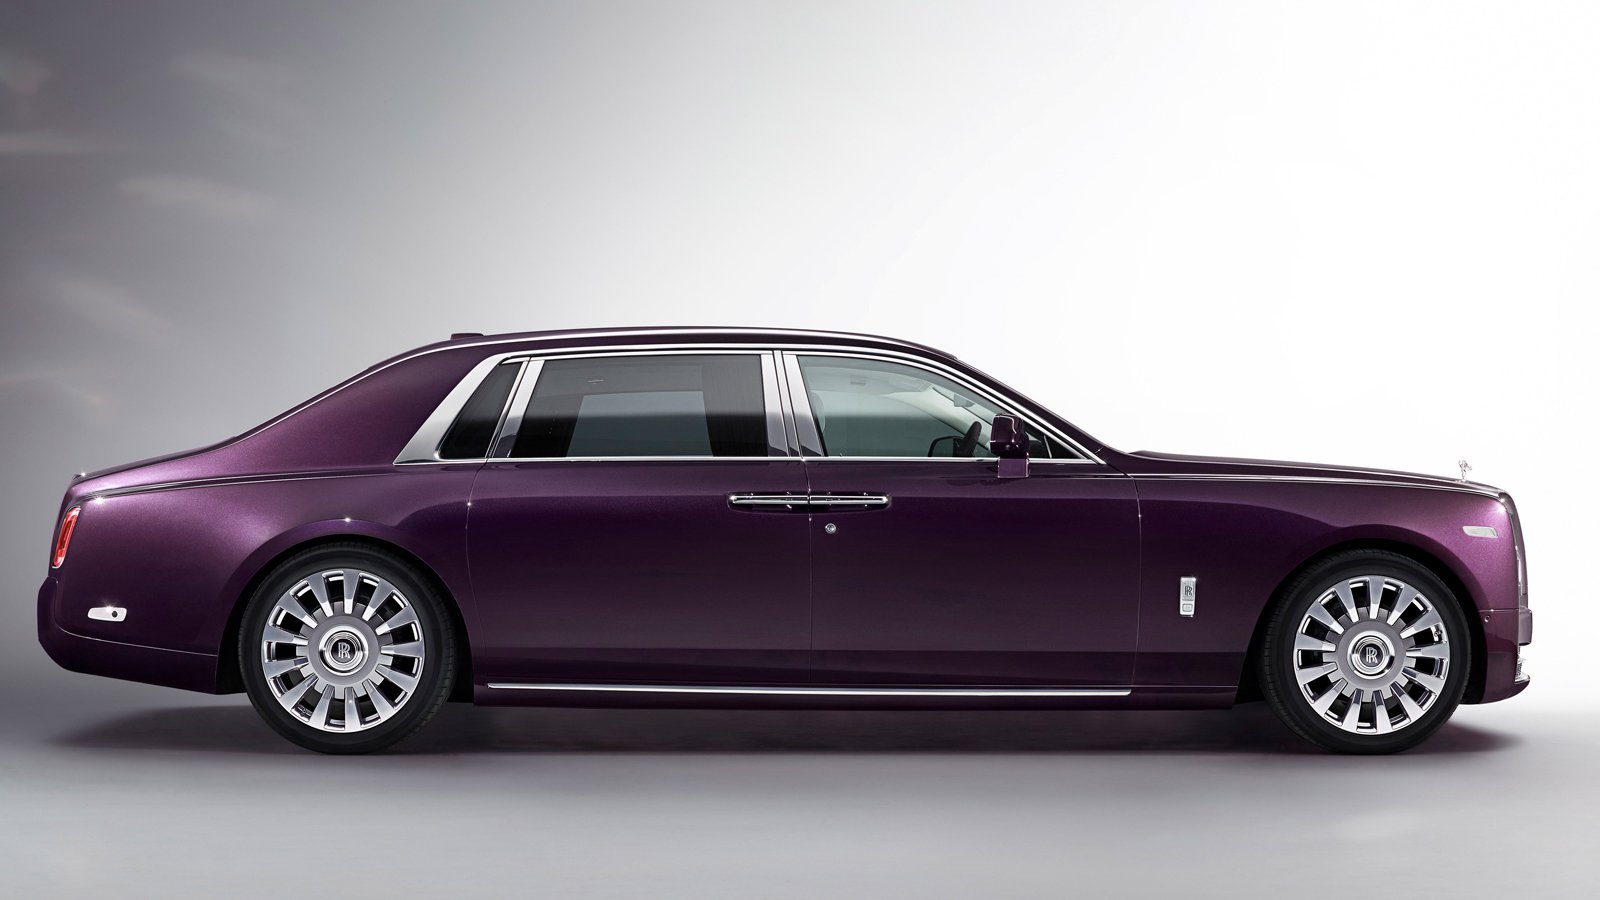 Rolls-Royce Phantom VIII revealed; is the most silent car in the world